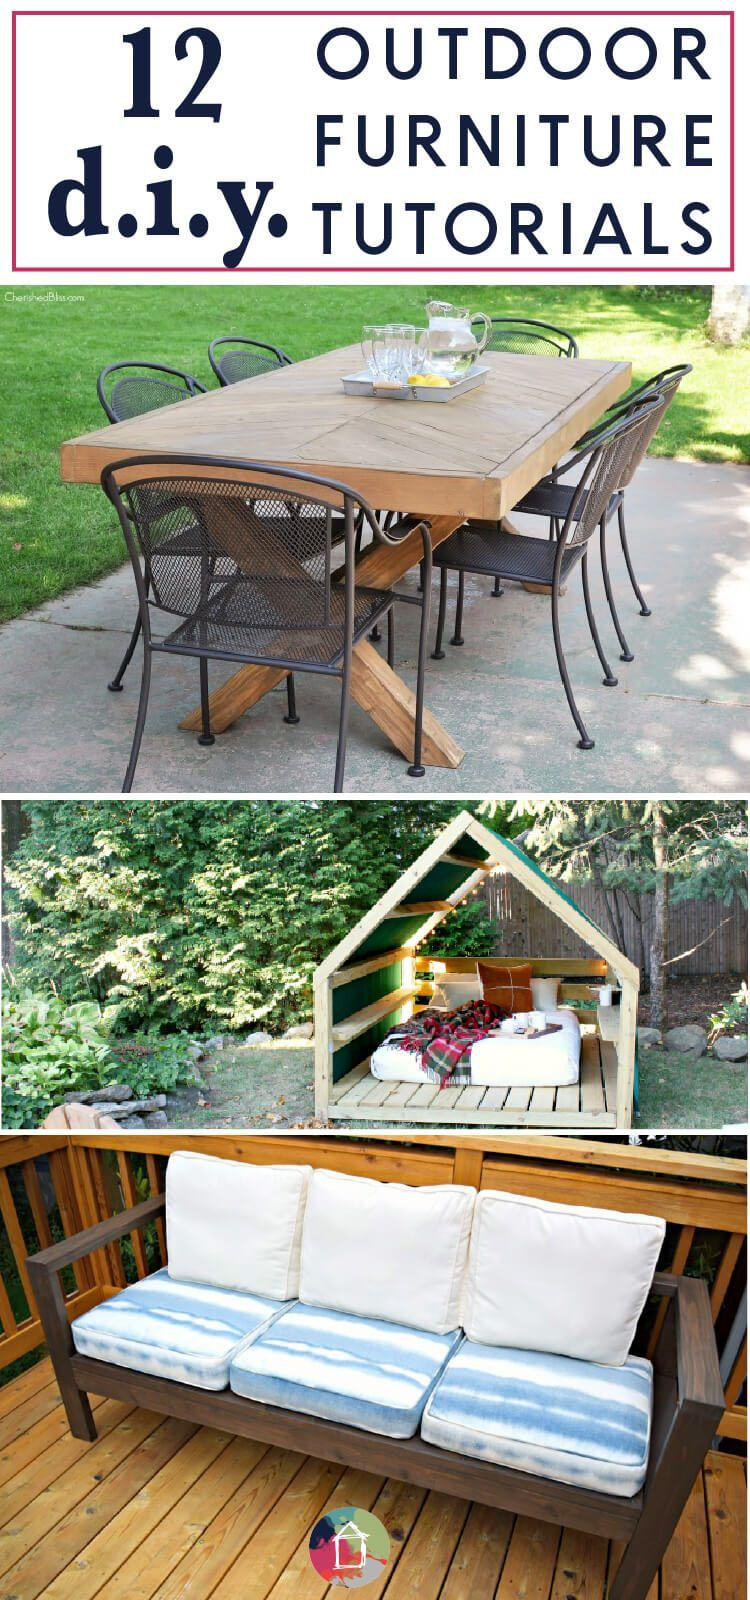 Diy outdoor furniture creative affordable ideas diy outdoor diy outdoor furniture creative affordable ideas solutioingenieria Gallery